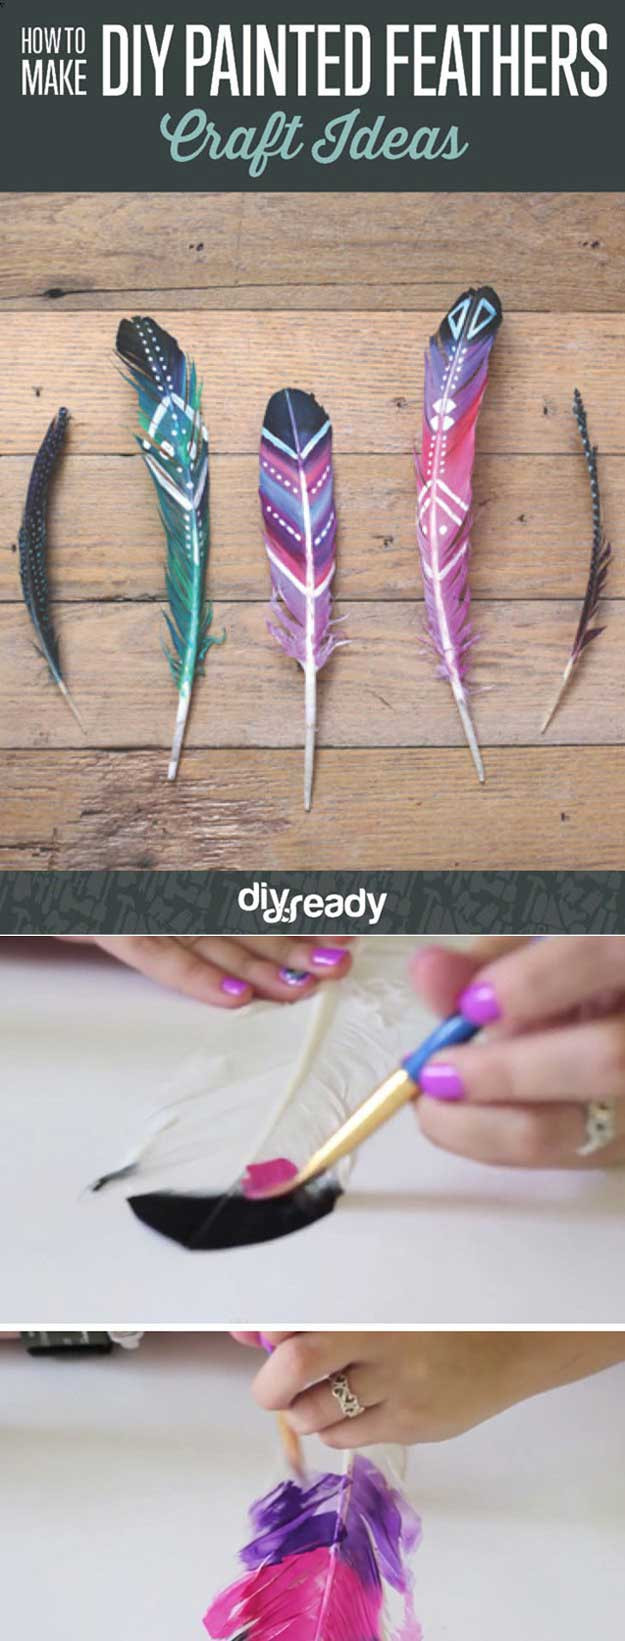 Best ideas about DIY Projects For Teens . Save or Pin Teen DIY Projects for Girls DIY Projects Craft Ideas & How Now.